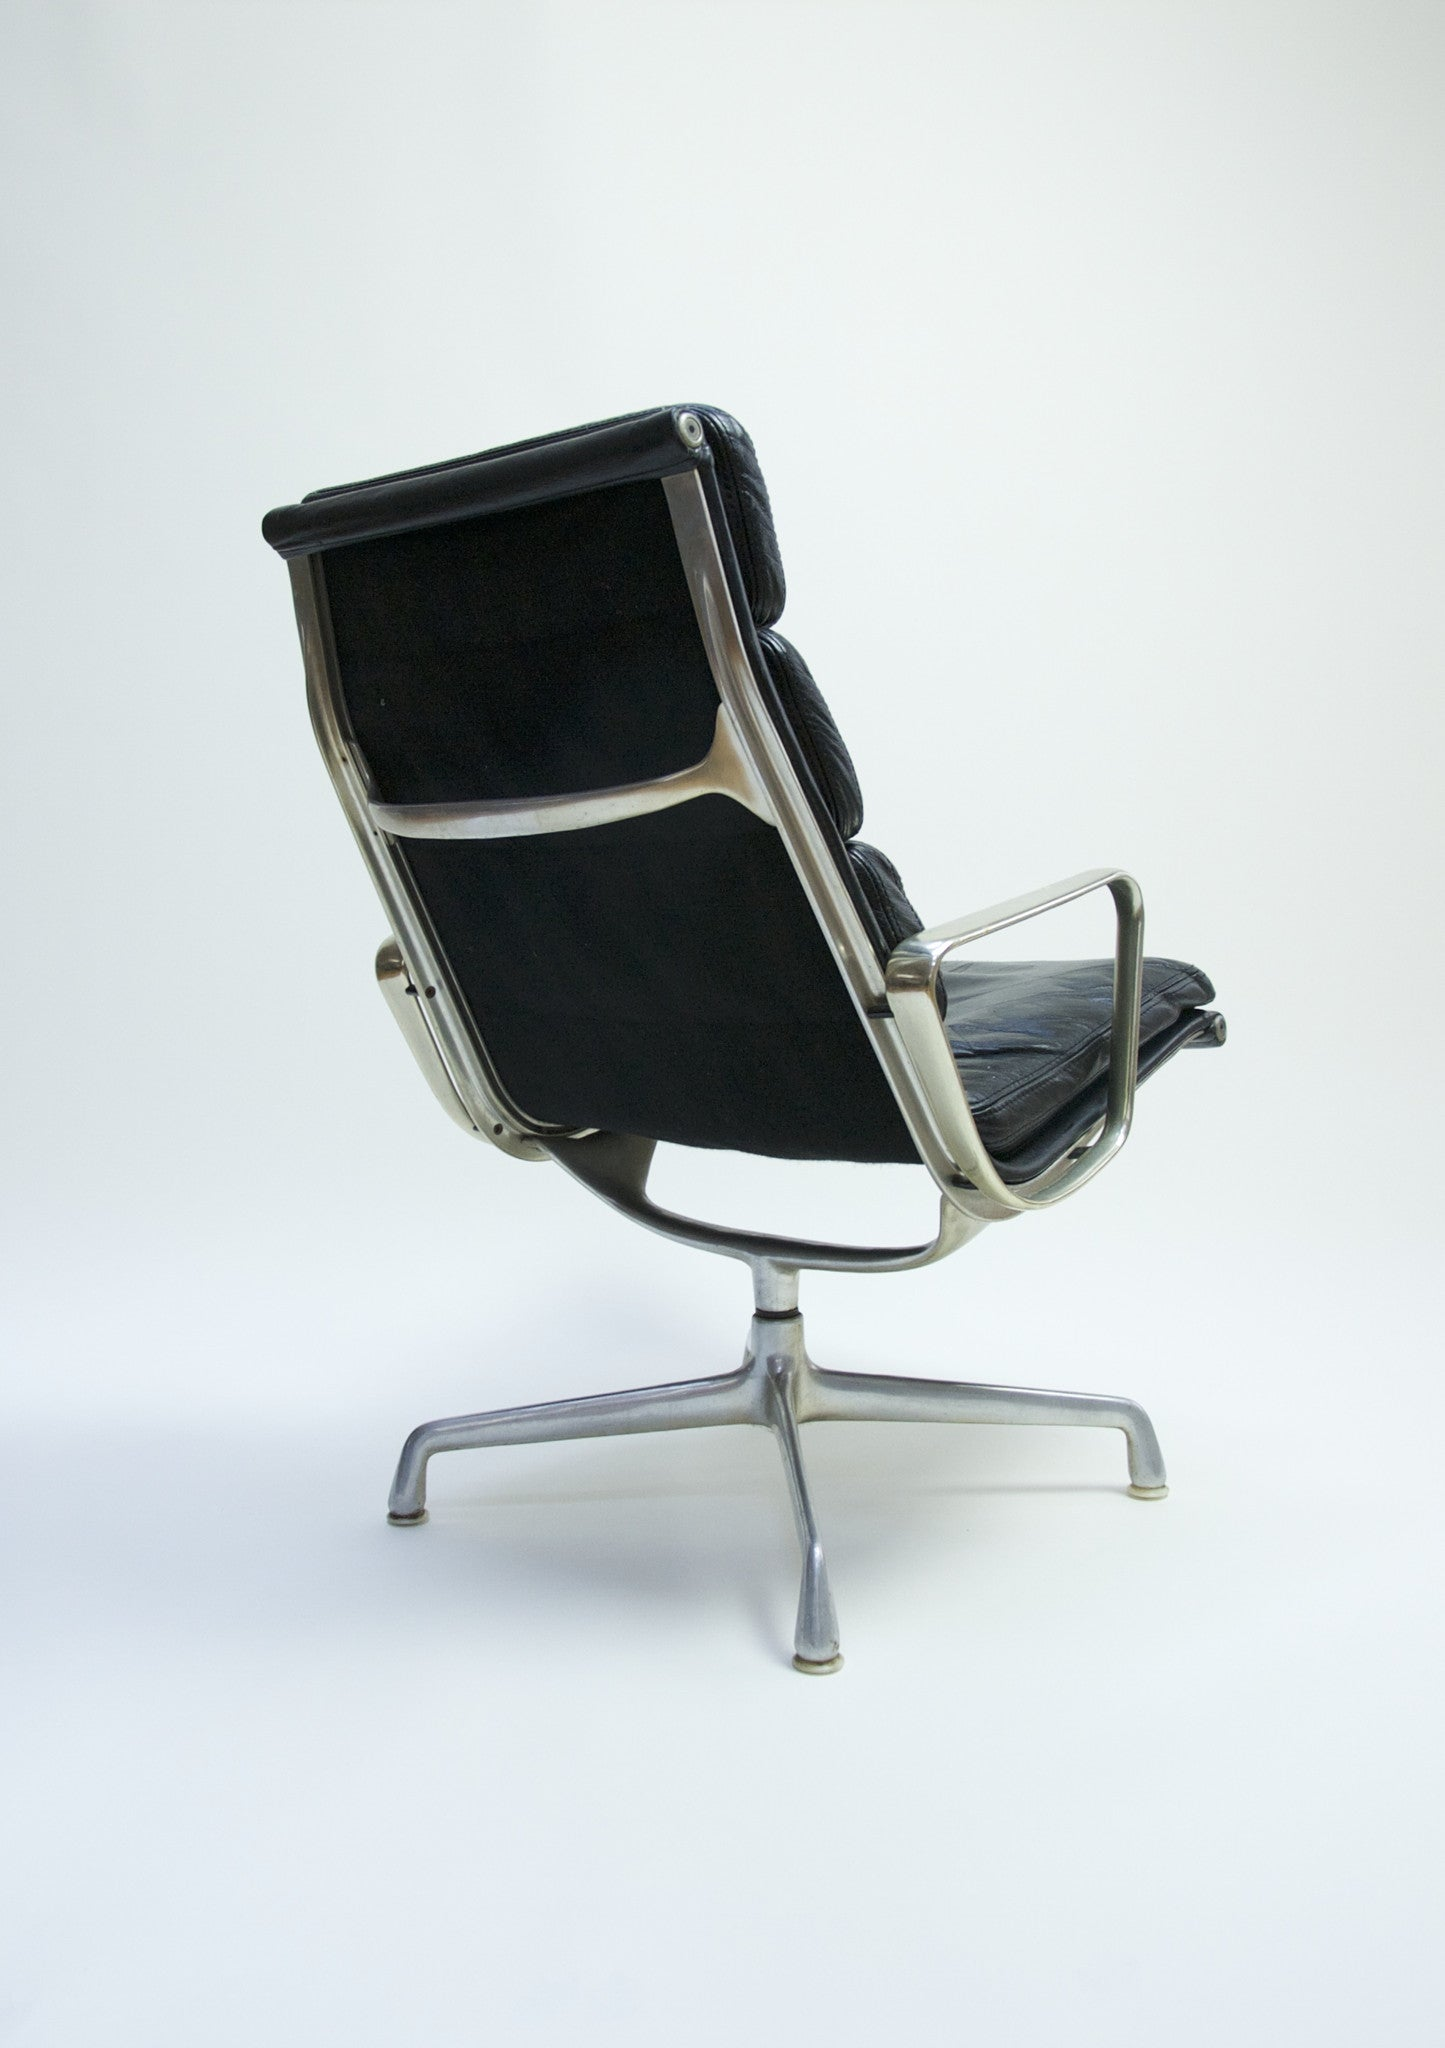 SOLD Eames Herman Miller Soft Pad Lounge Chair #1